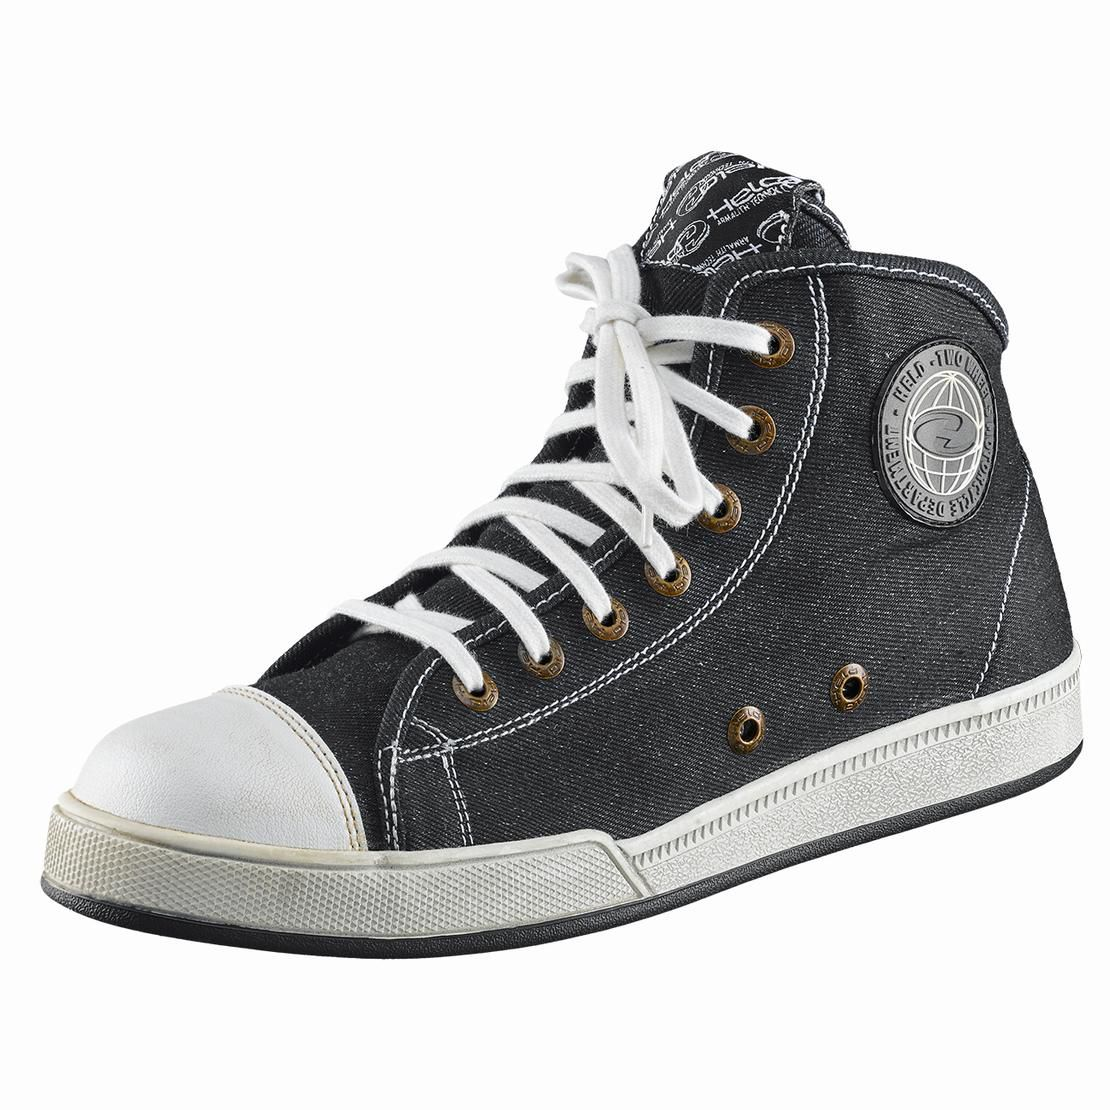 Held terence urban sneaker OUTLET